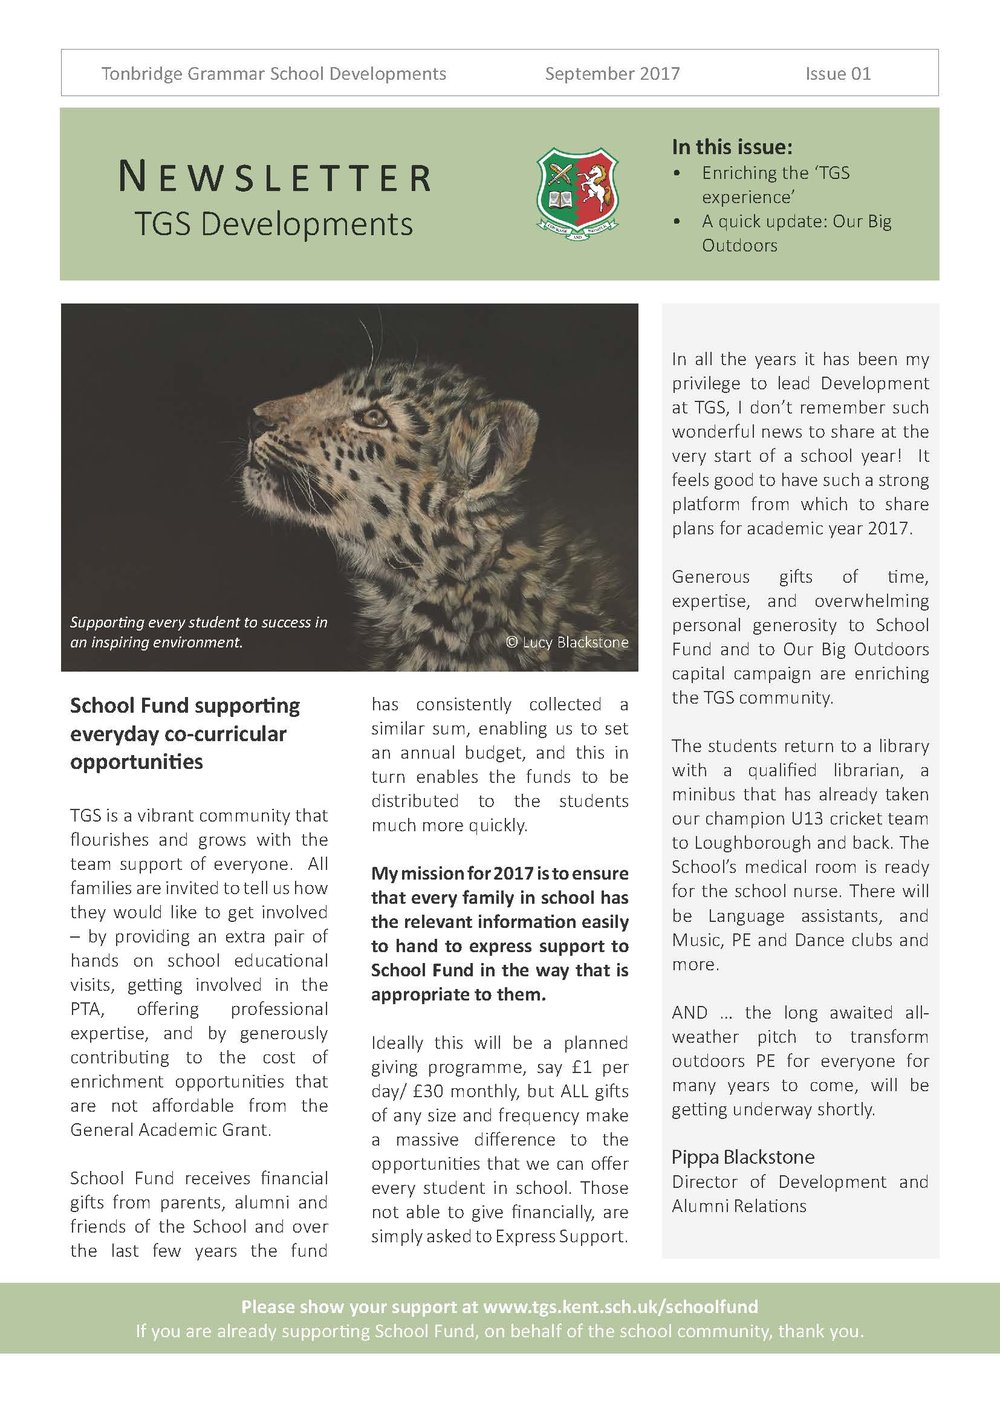 TGS Developments September 2017 issue 1 FINAL_Page_1.jpg